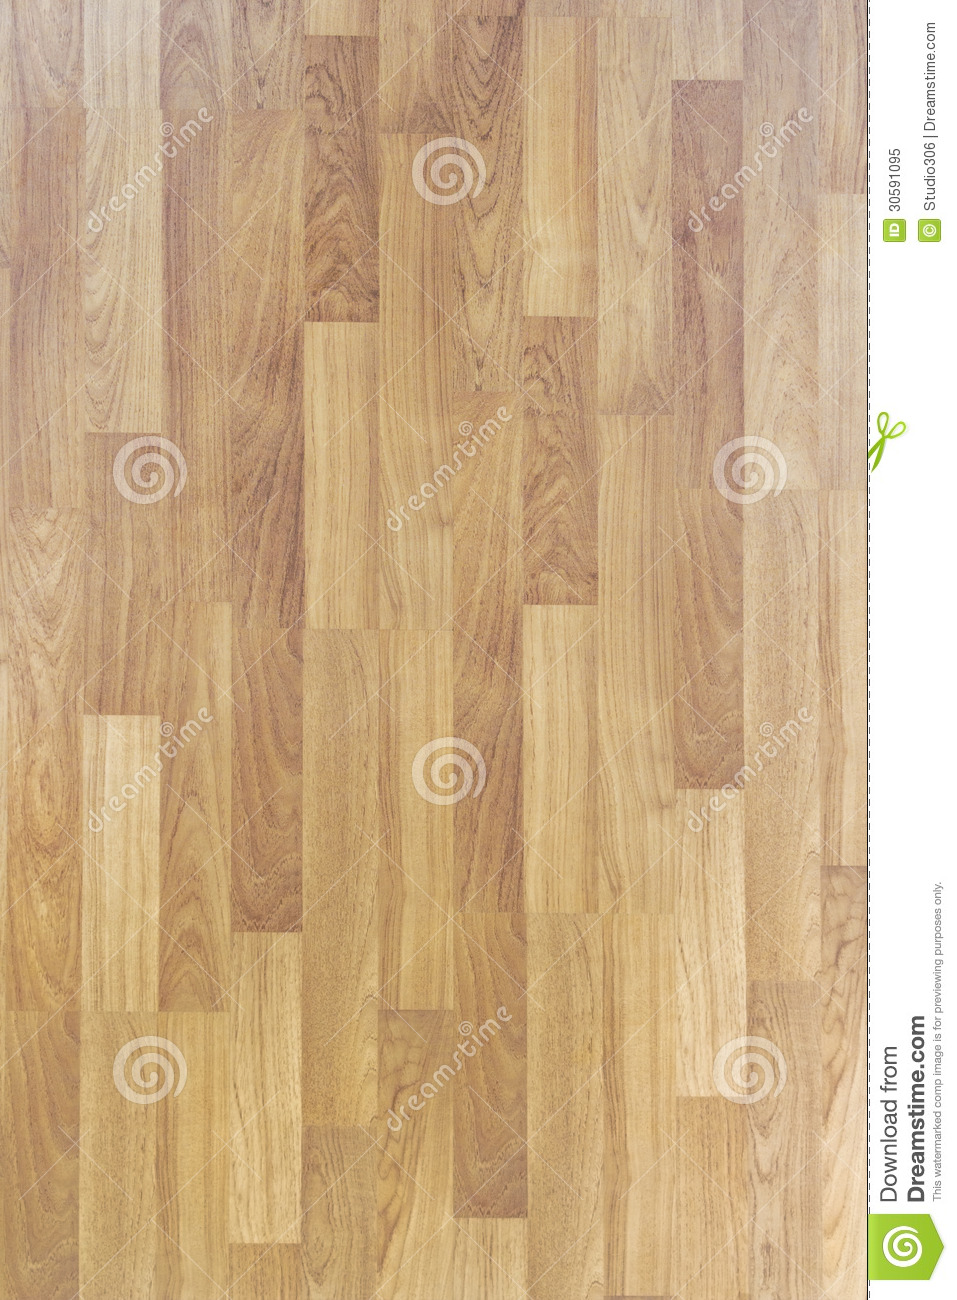 Brown Laminate Texture Royalty Free Stock Photo Image